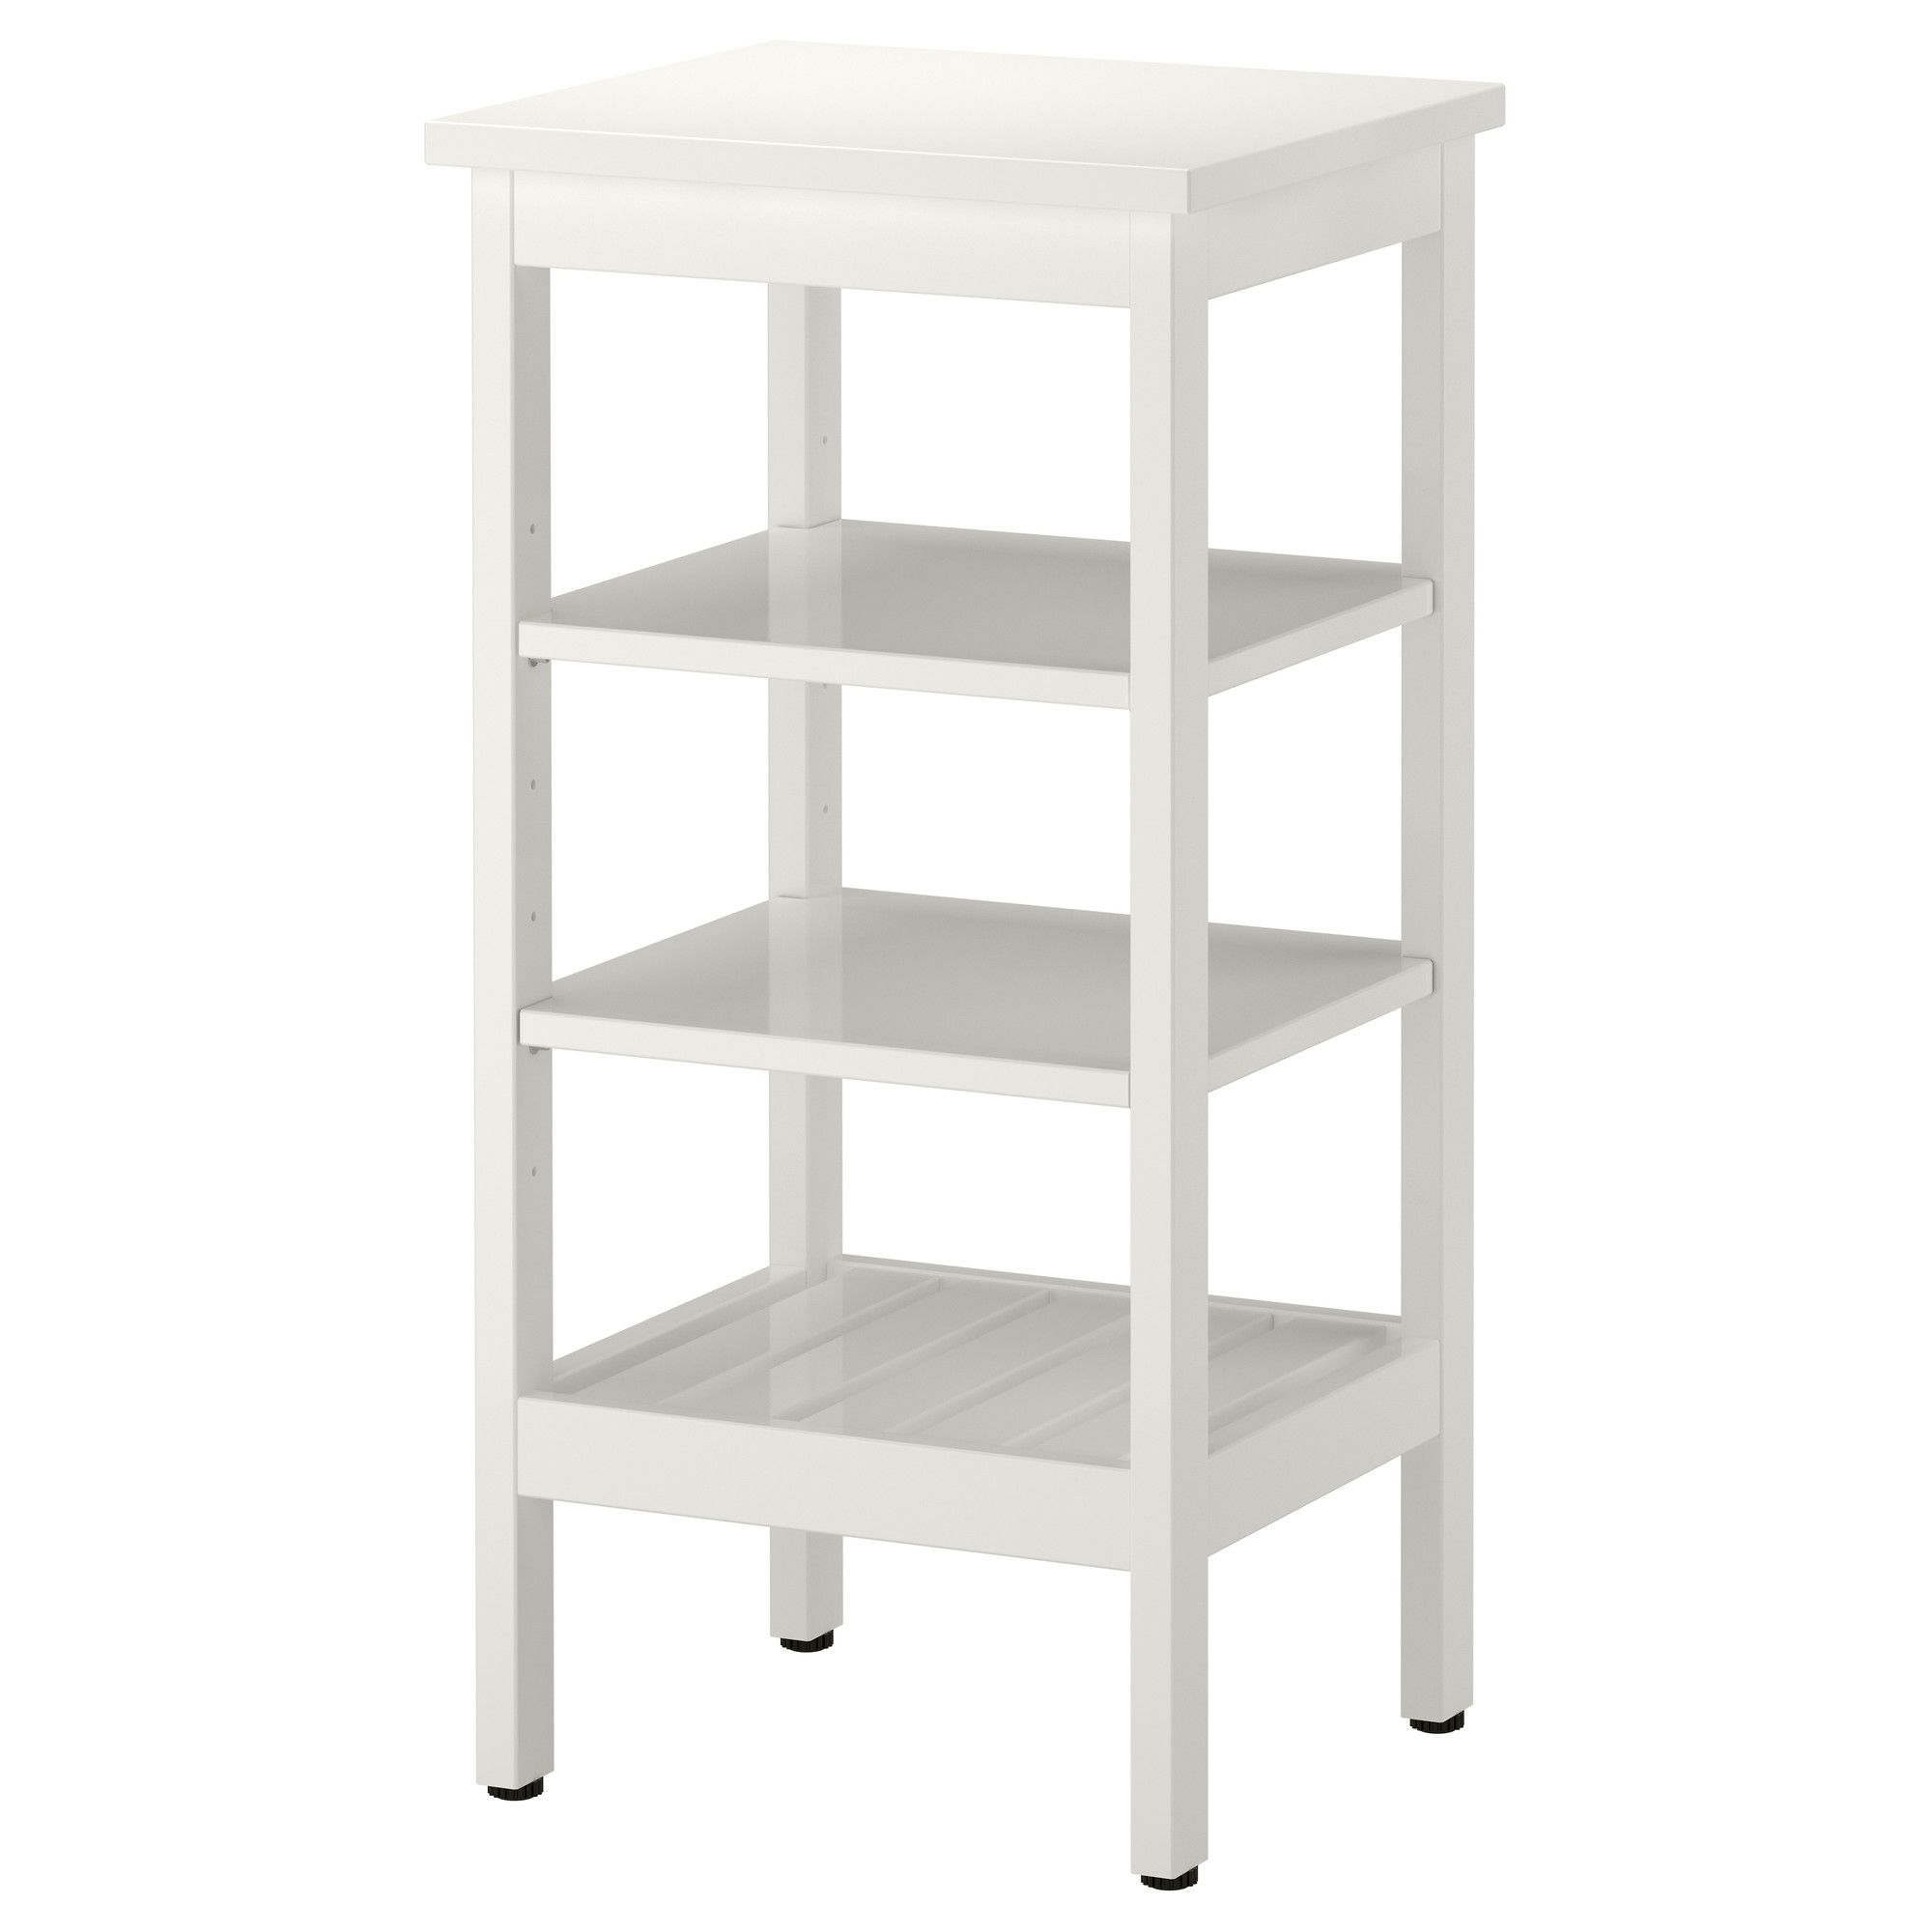 Printer Stand with paper storage below. HEMNES Shelving unit ...